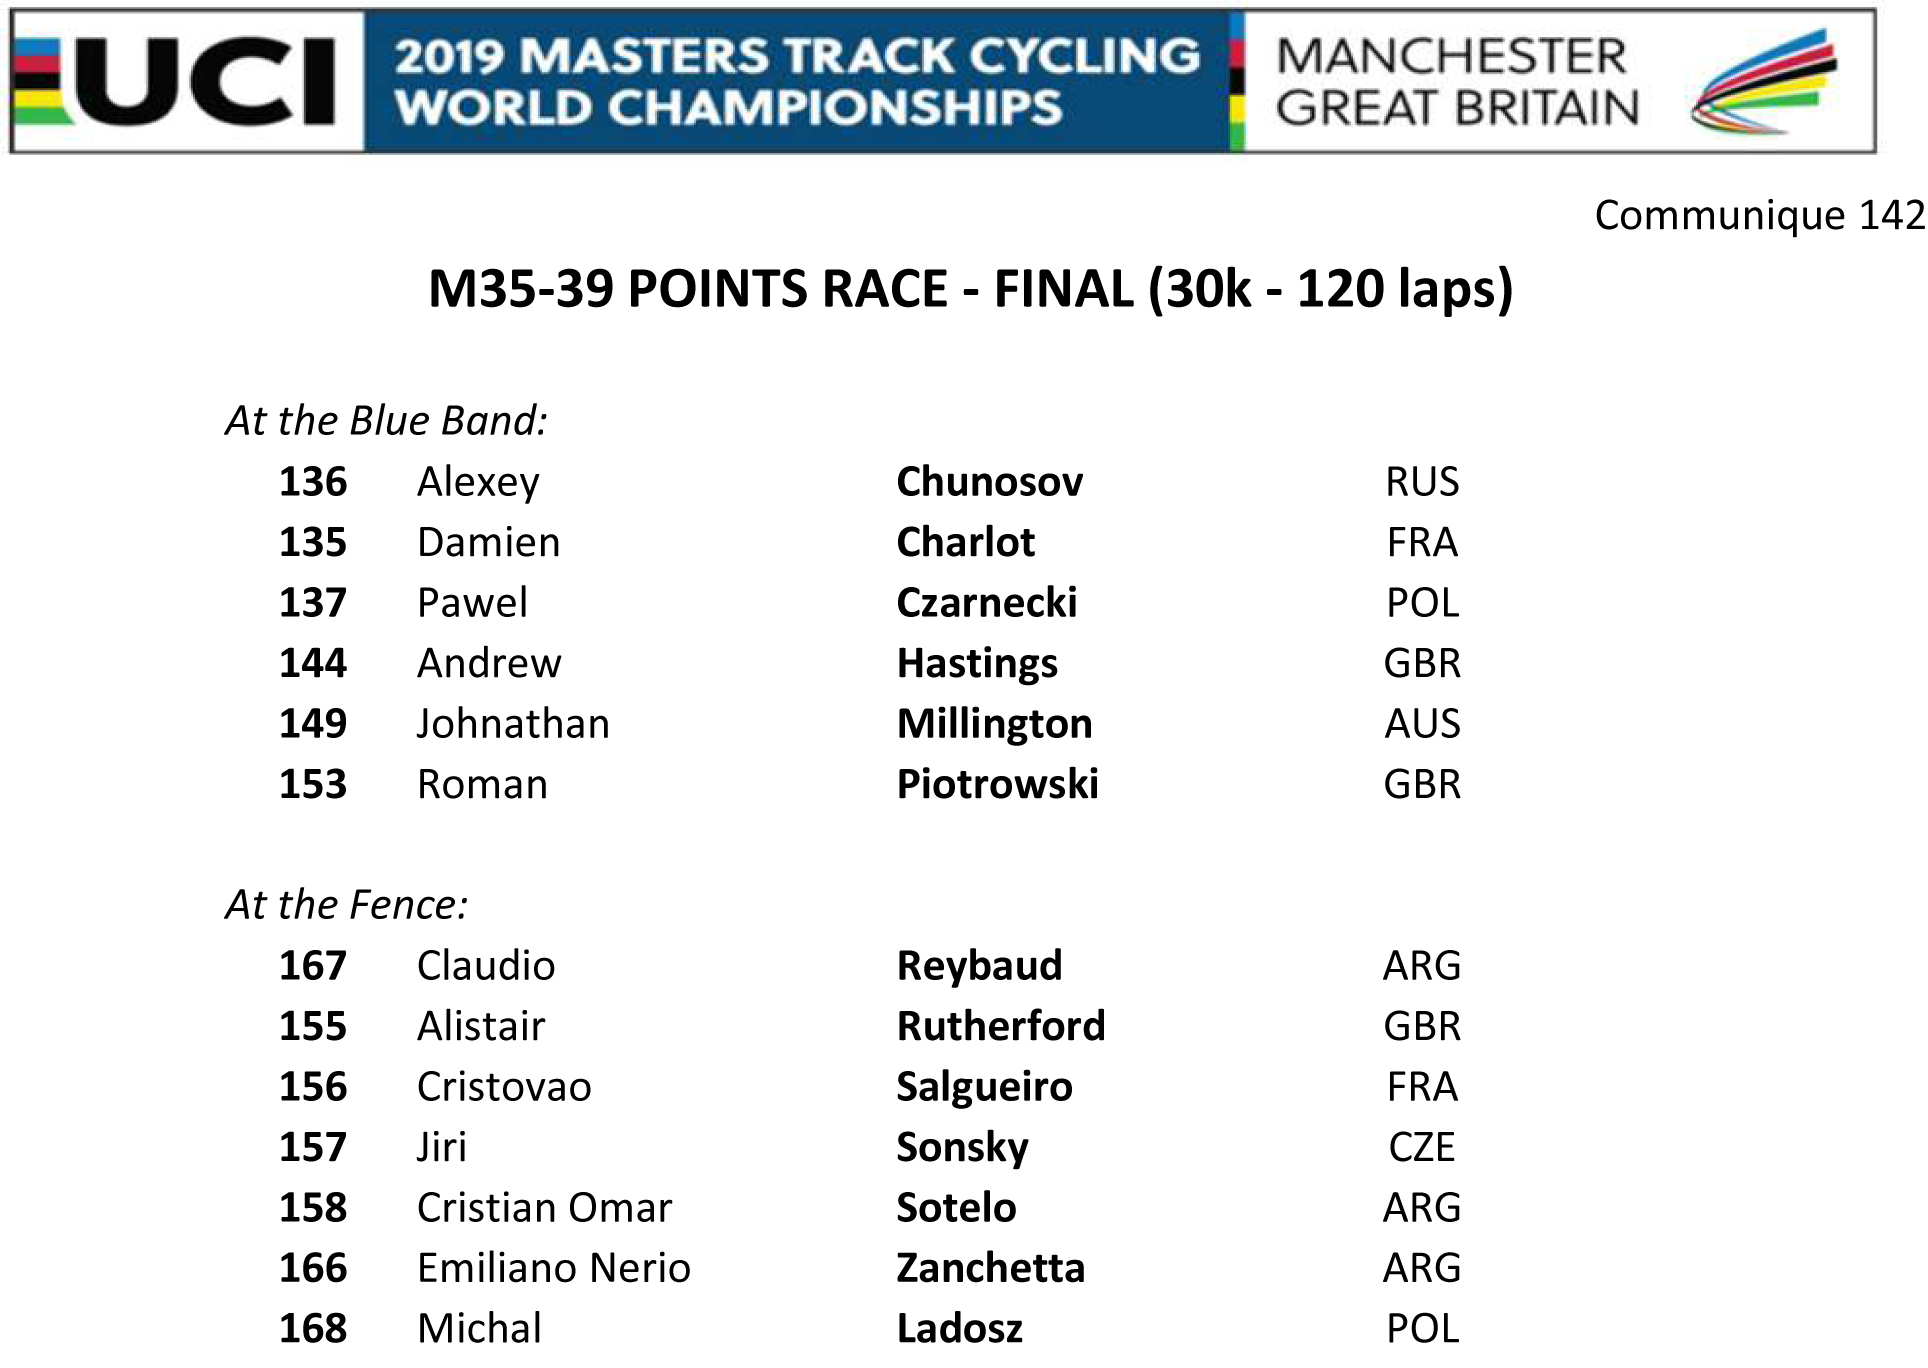 M3539 POINTS RACE START LIST